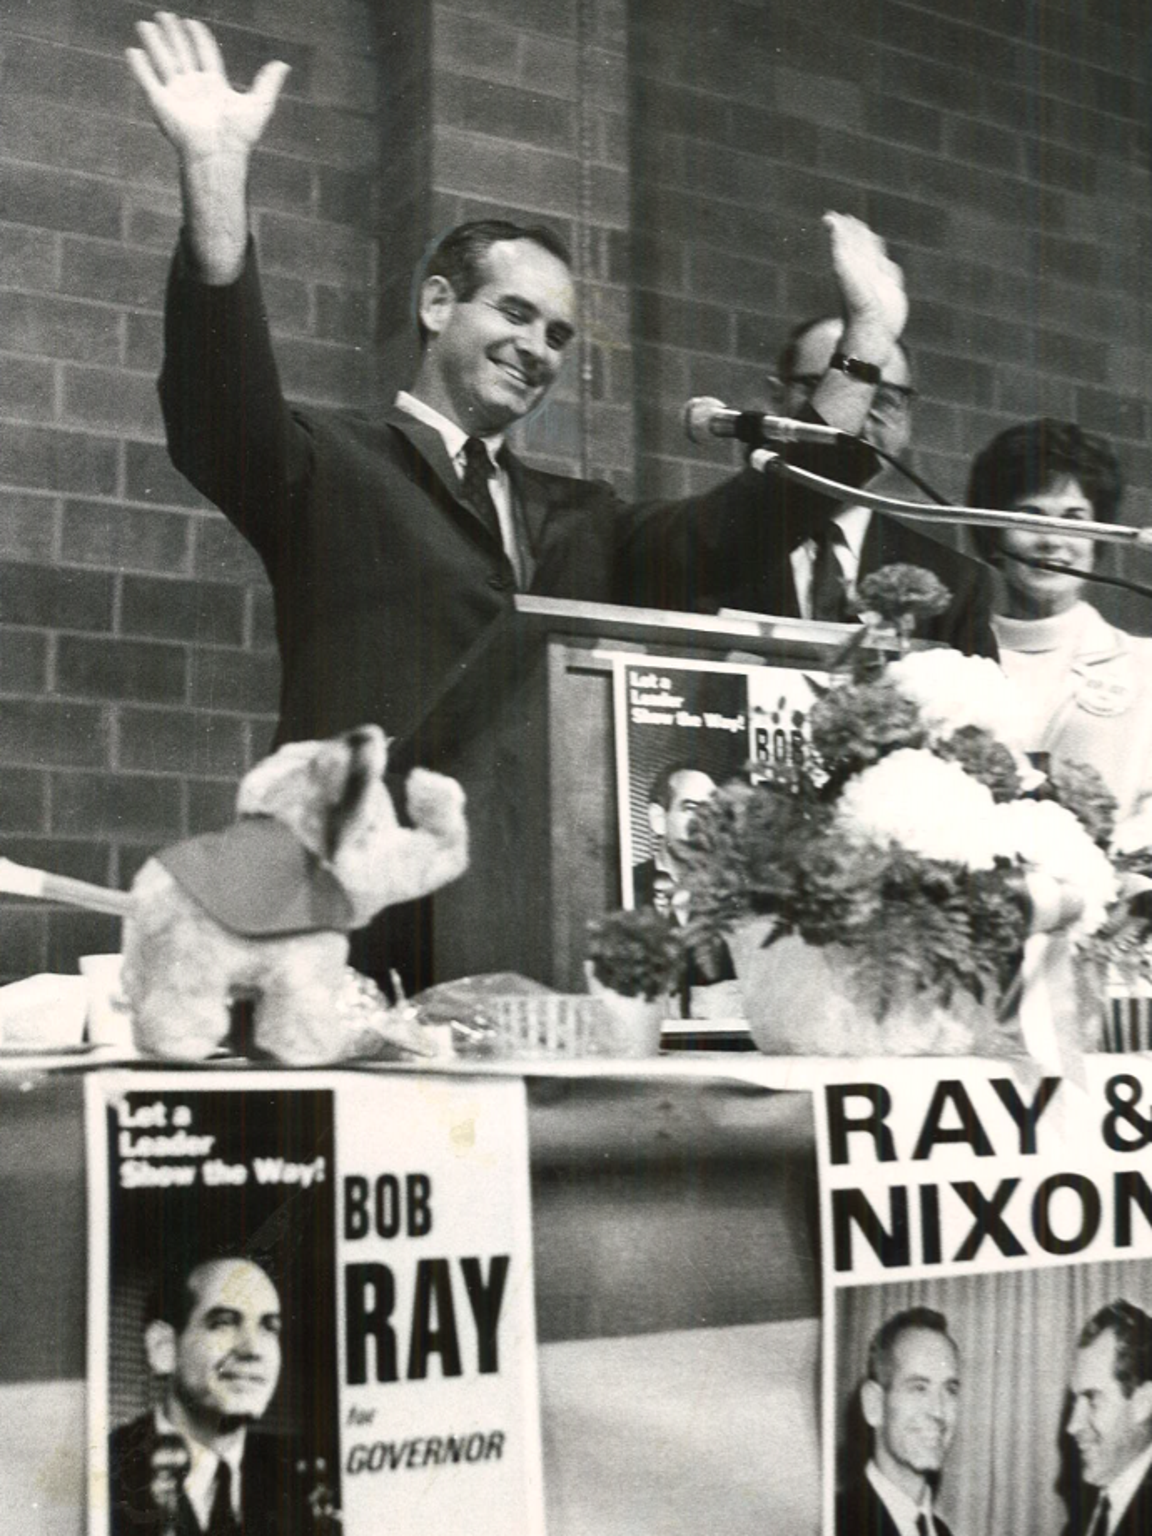 From 1968: Robert Ray, Republican candidate for governor,